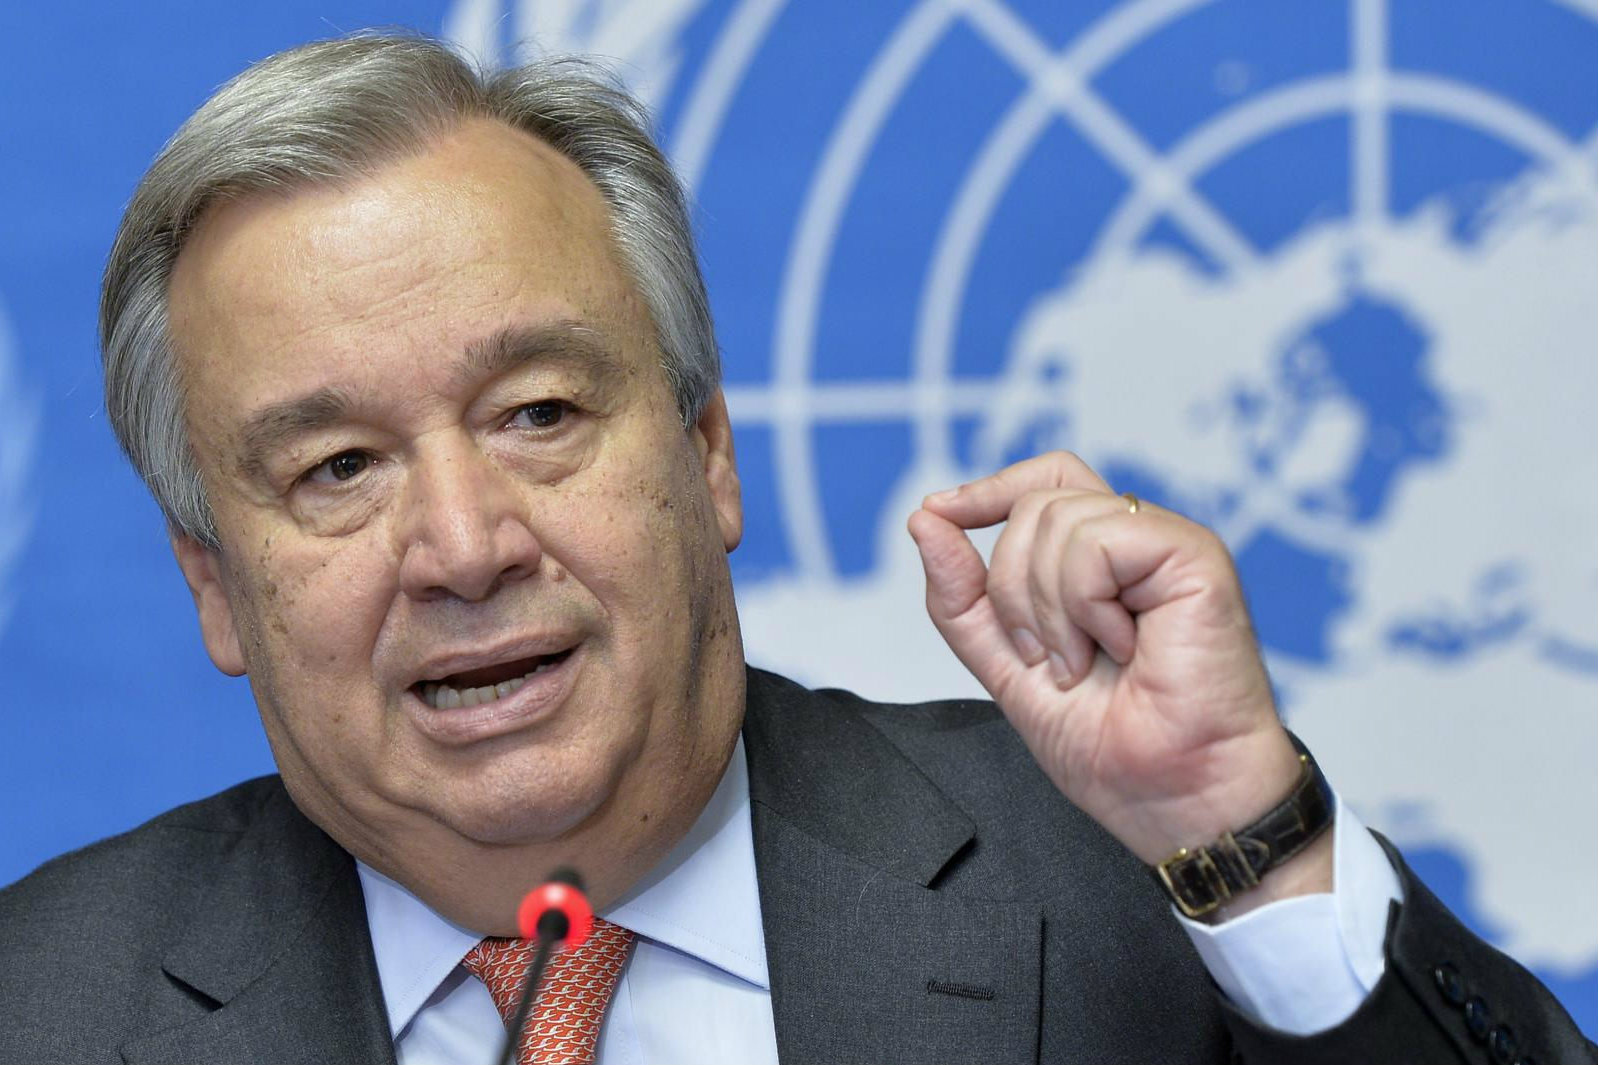 UN Refugee Commissioner António Guterres praised German refugee policy, saying the country sets an example for other EU member states. [UN Geneva/Flickr]